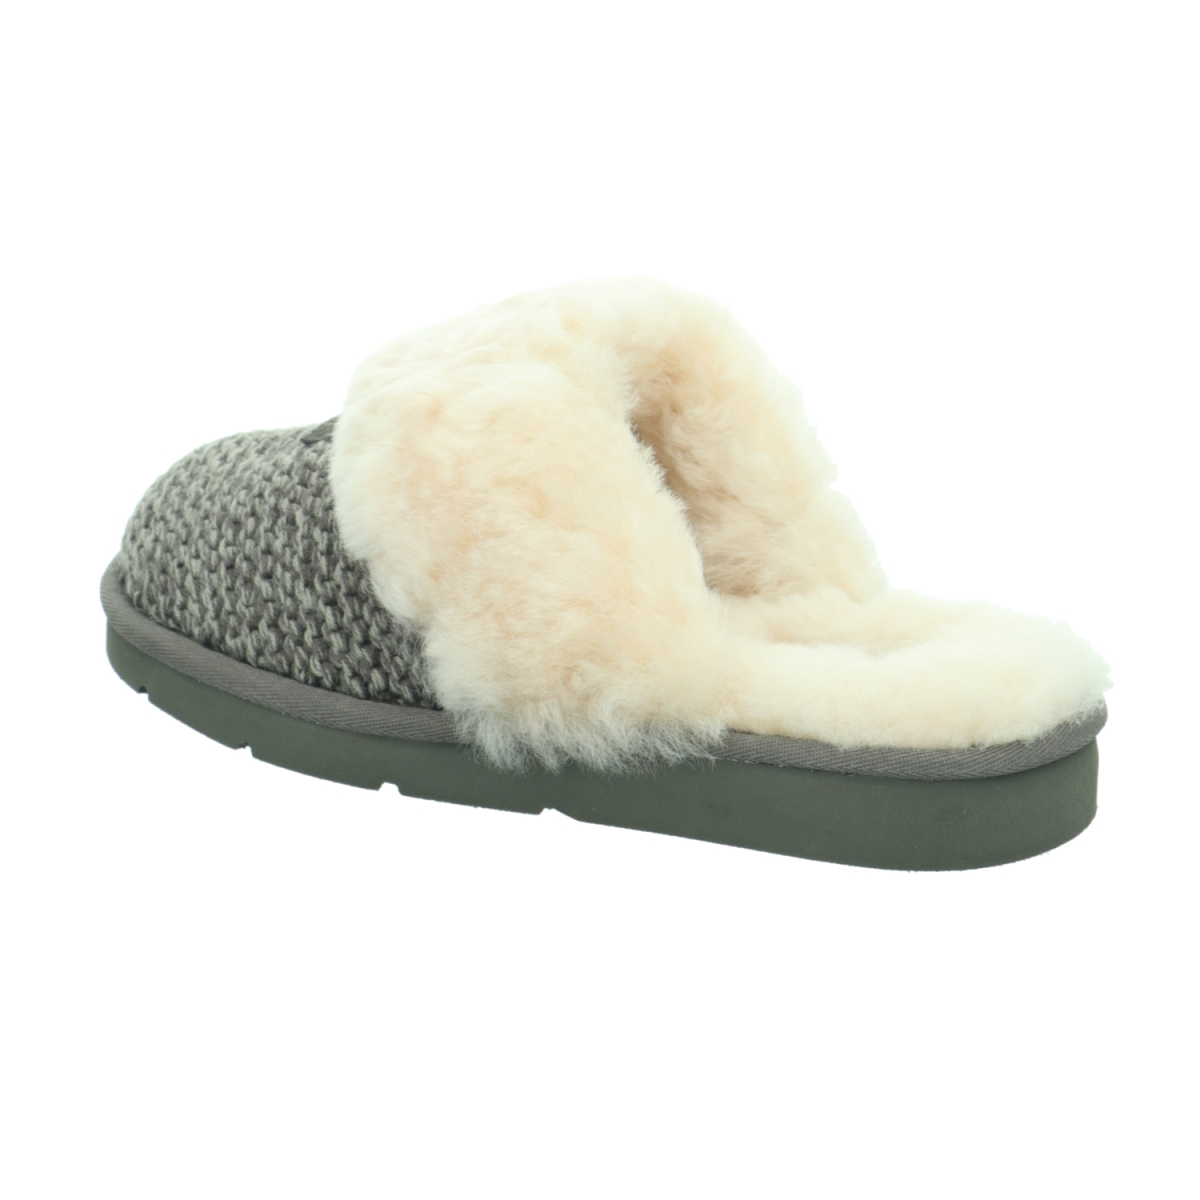 Details about UGG Cozy Knit Slipper Women   Charcoal (1095116)